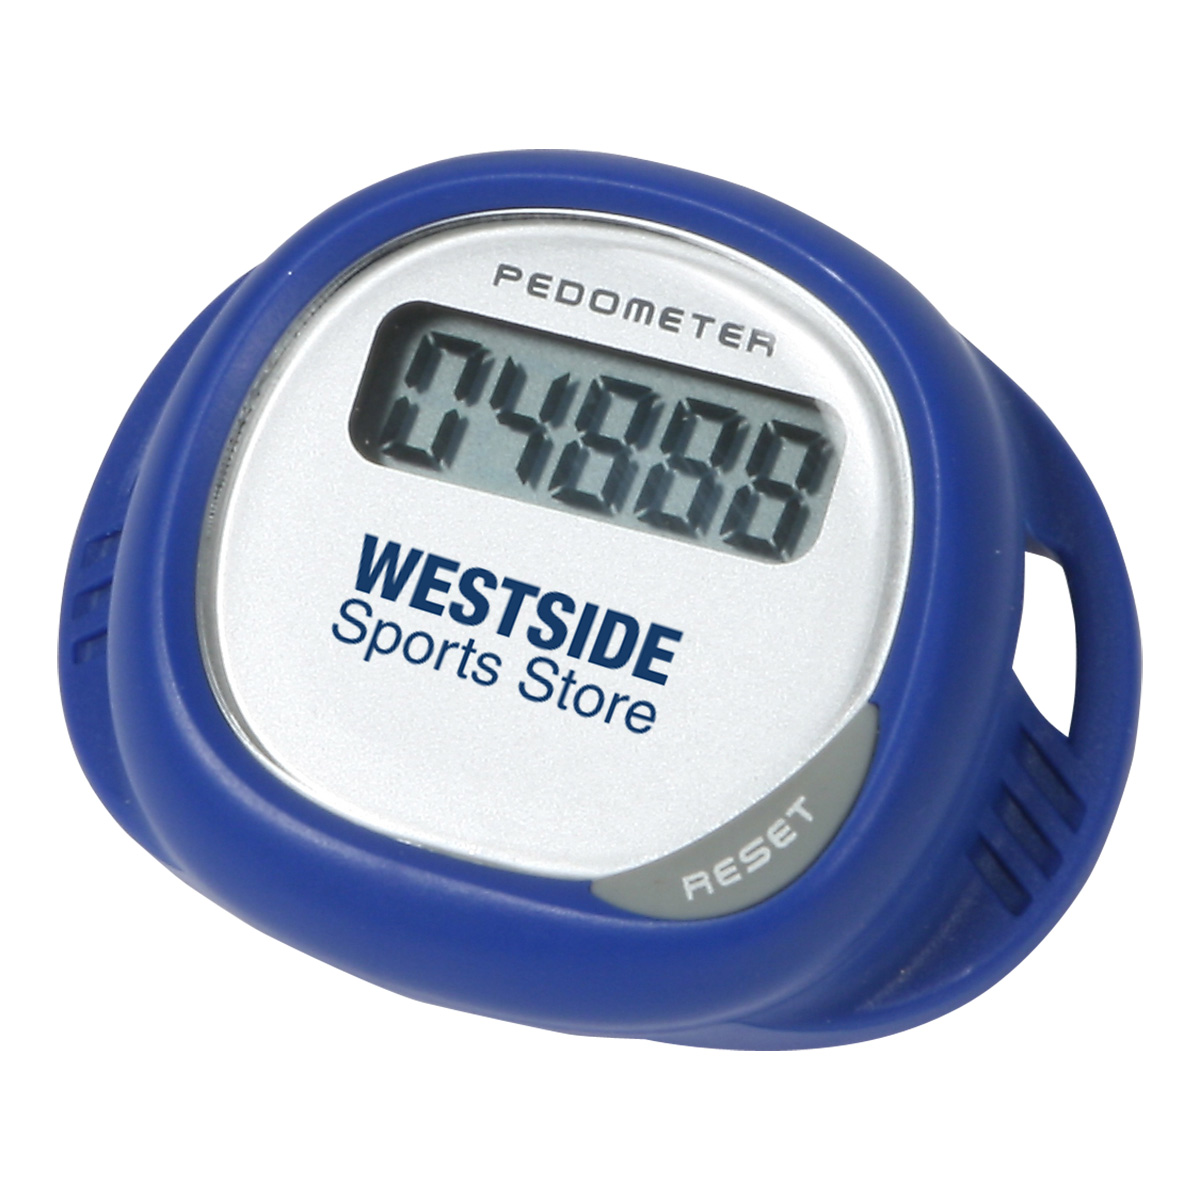 Simple Shoe Pedometer, WHF-SP12, 1 Colour Imprint